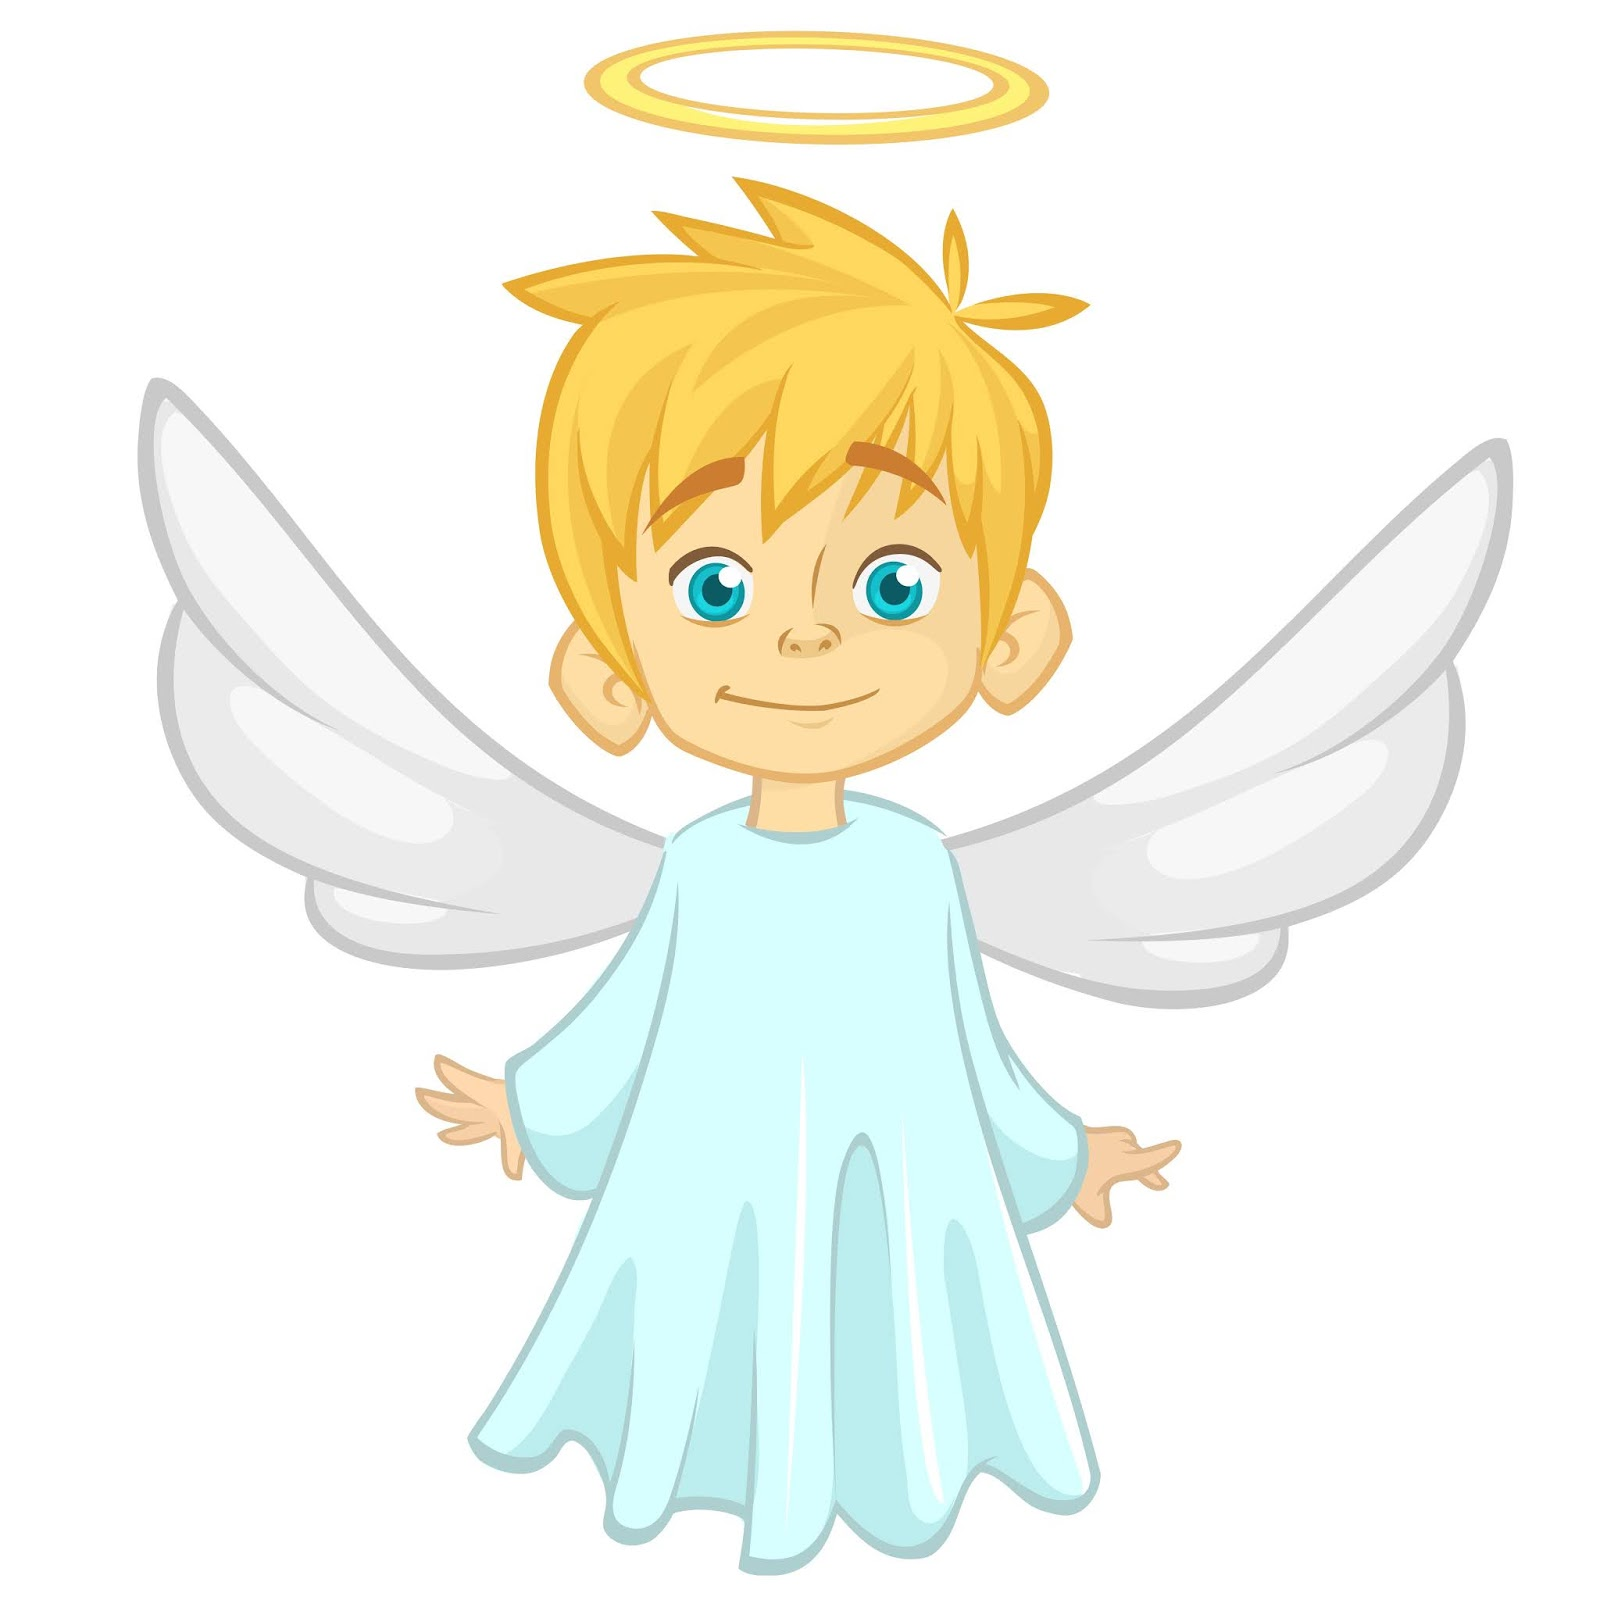 Angel Free Download Vector CDR, AI, EPS and PNG Formats